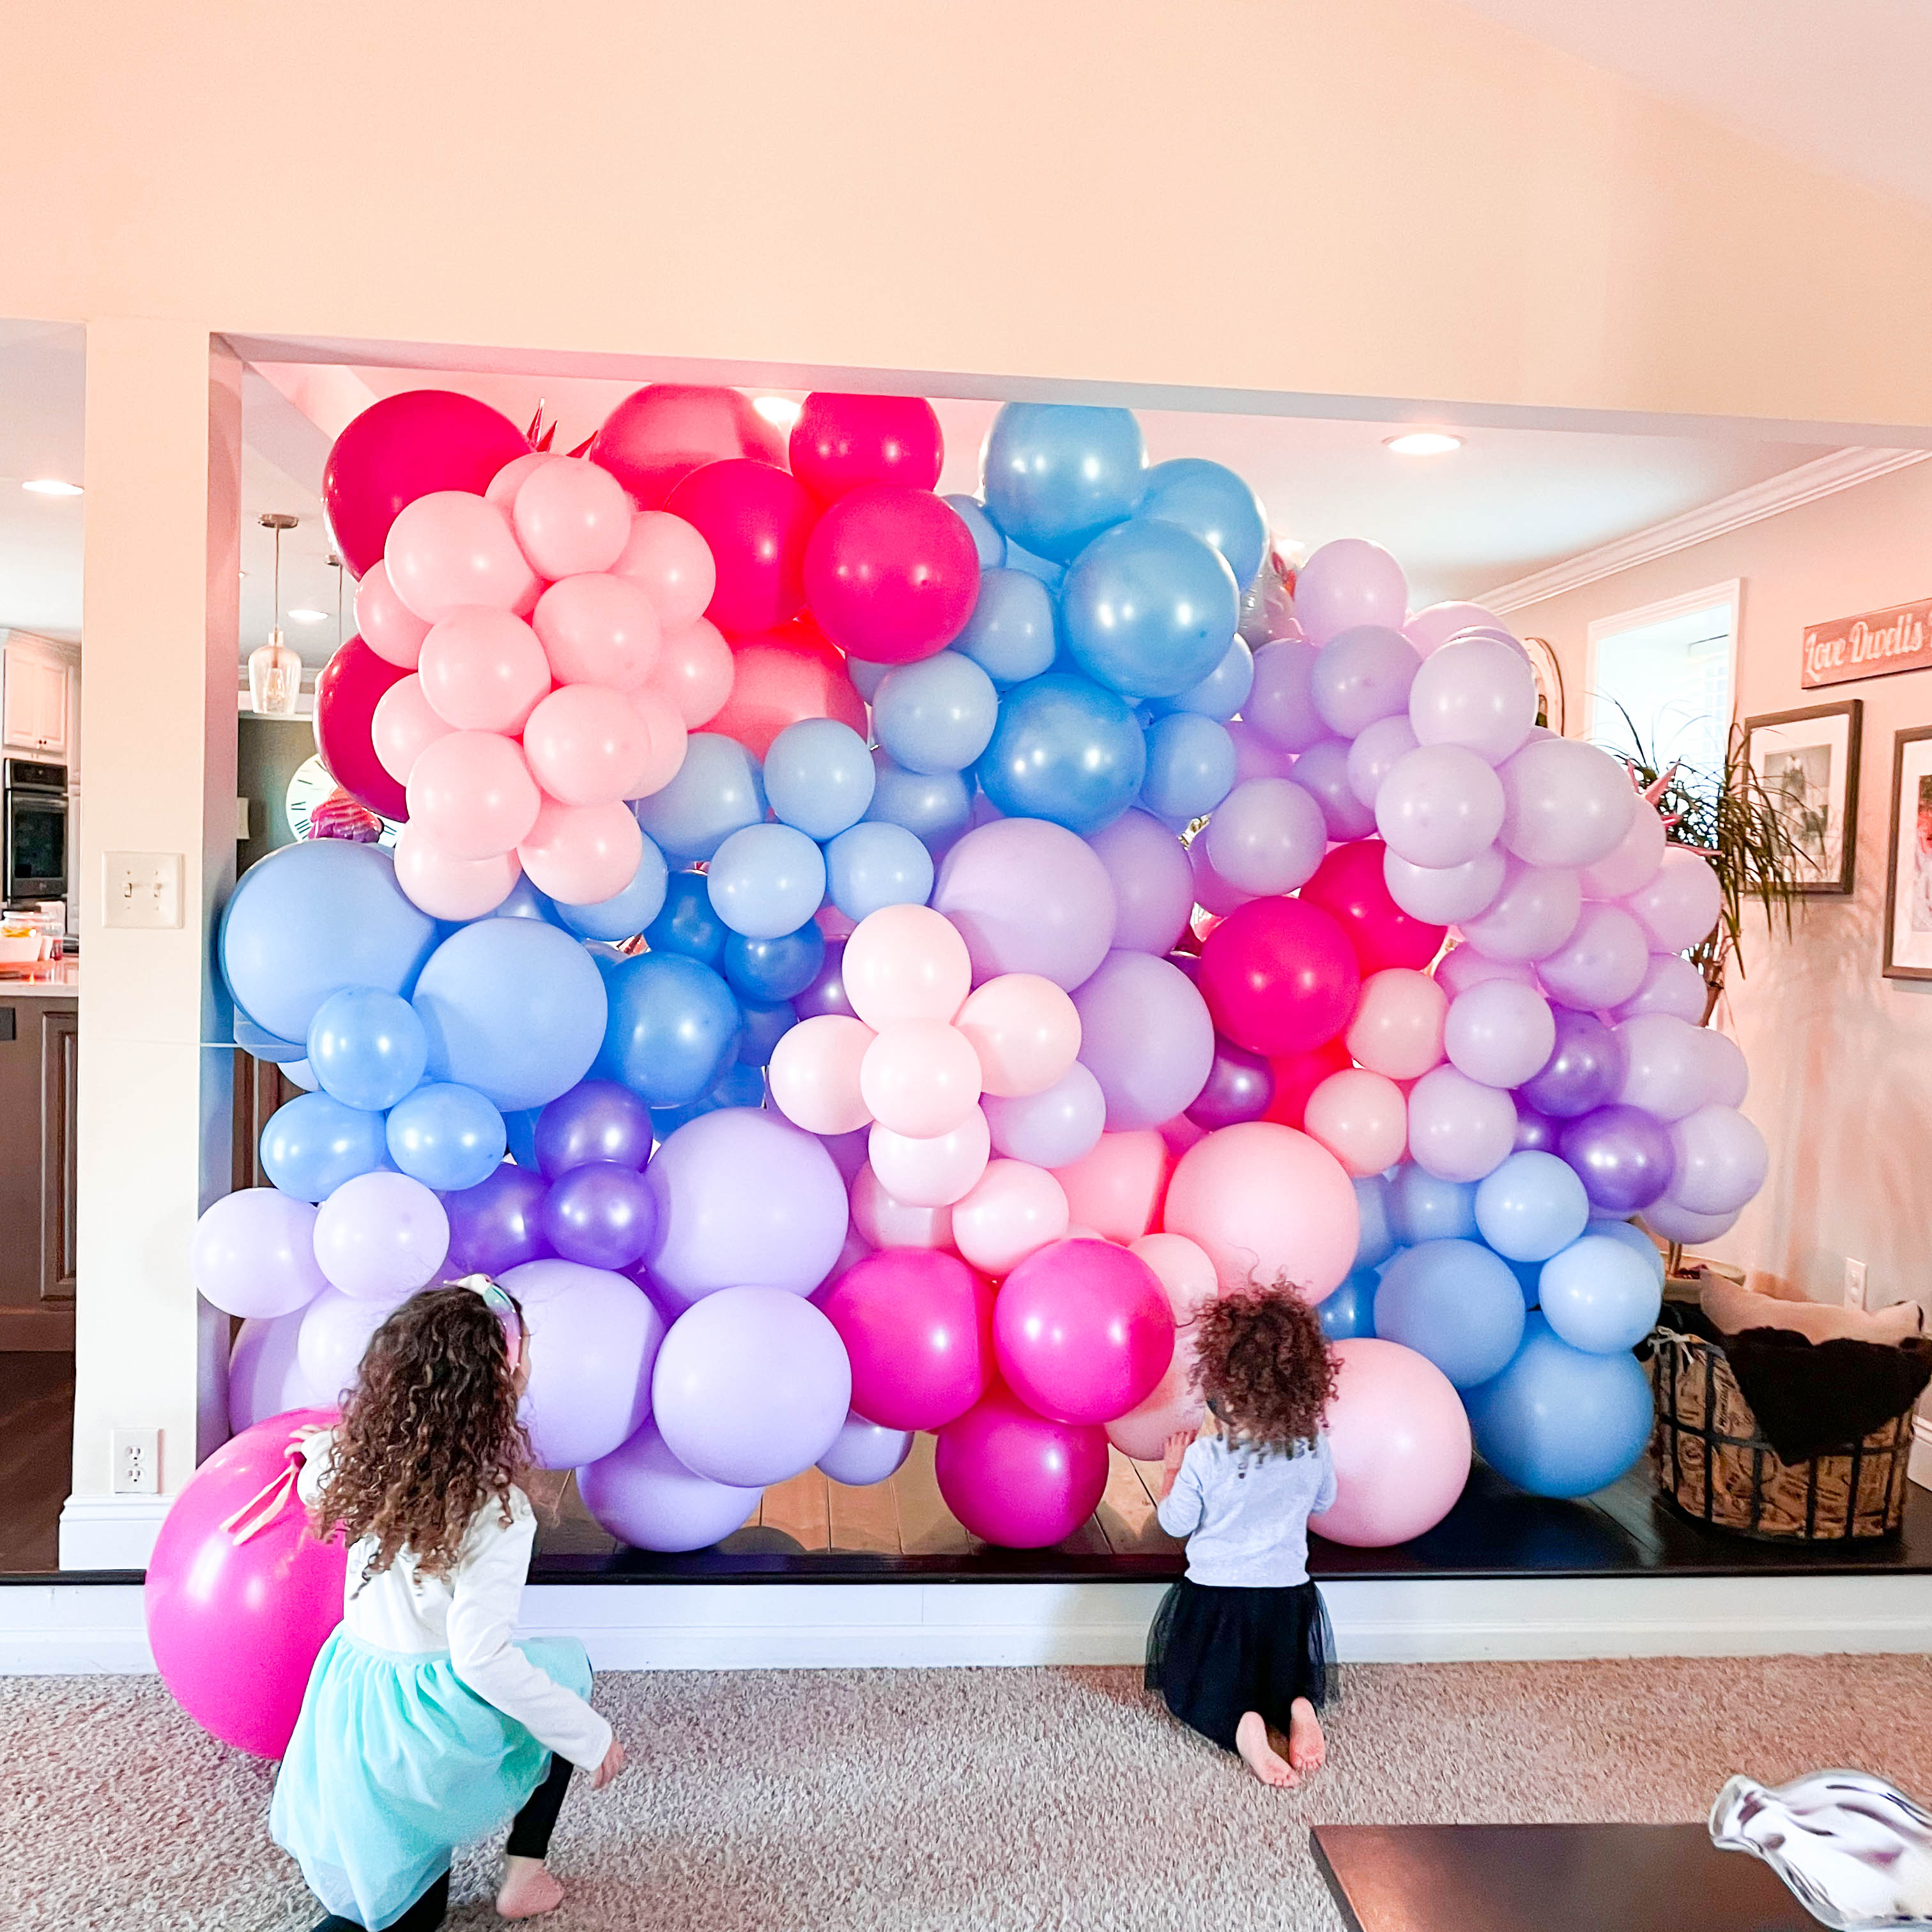 Two girls in front of pink, blue, and purple photo wall